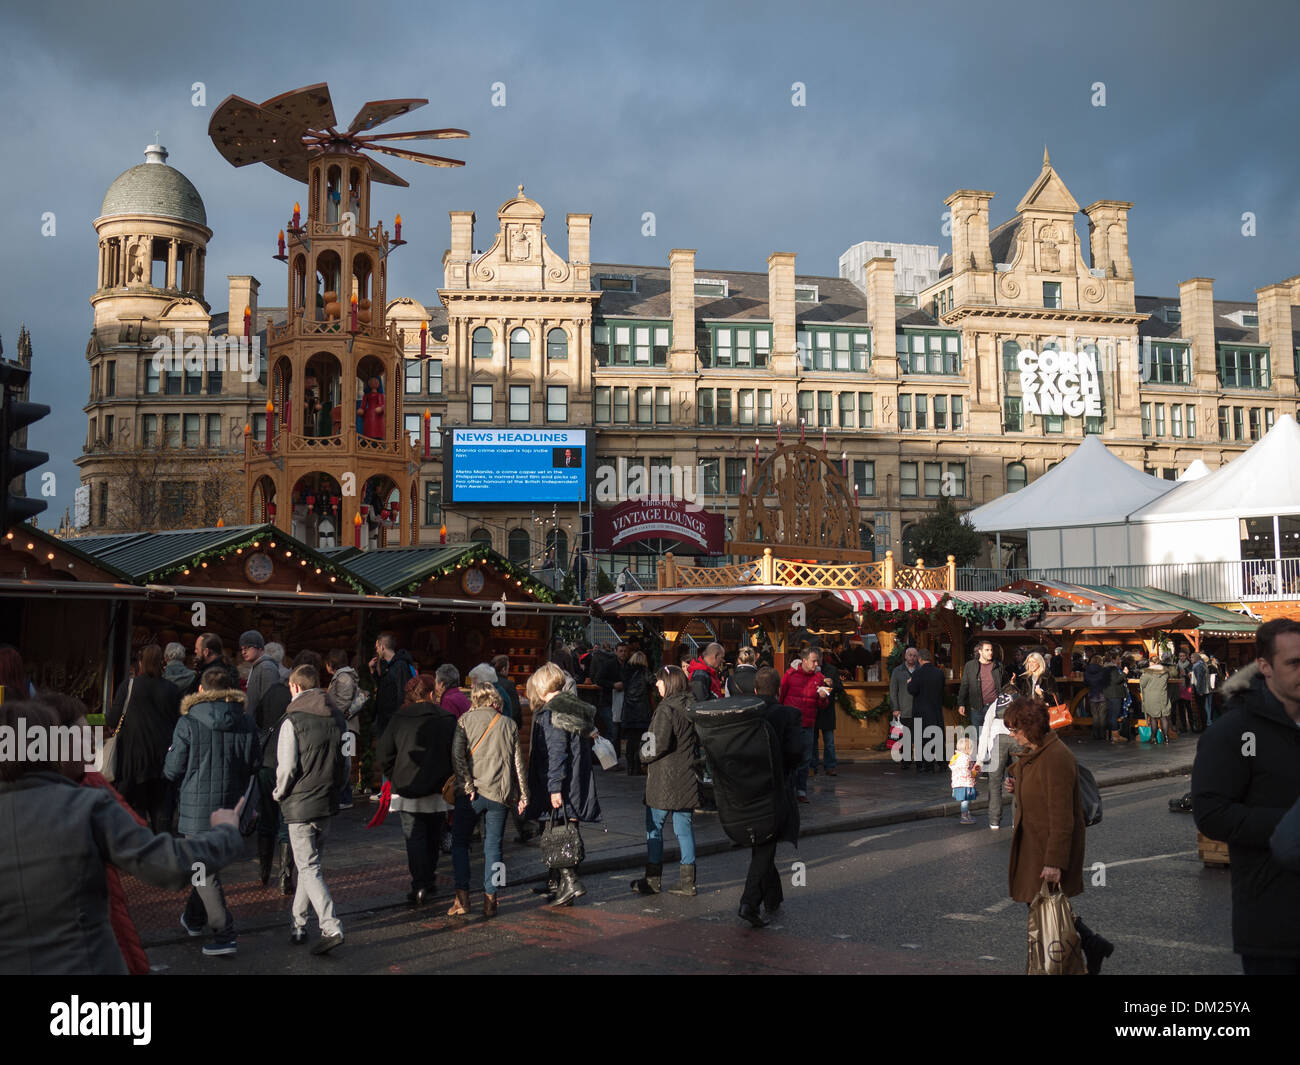 Manchester Christmas Markets at Corn Exchange, Manchester - Stock Image